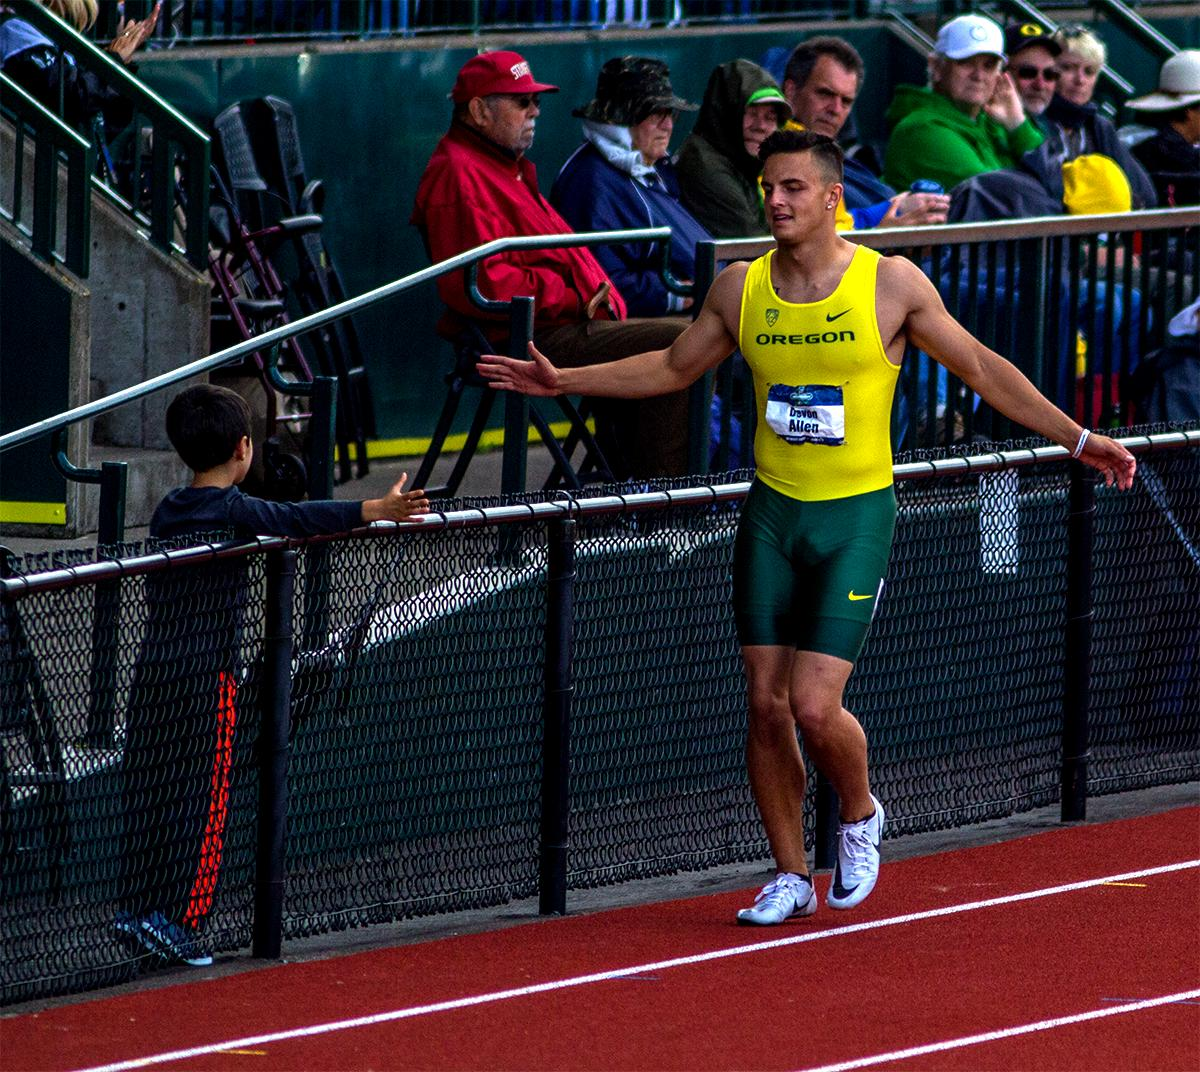 Devon Allen high fives a fan during his victory lap after winning the 110 meter hurdles in 13.50.  Photo by August Frank, Oregon News Lab